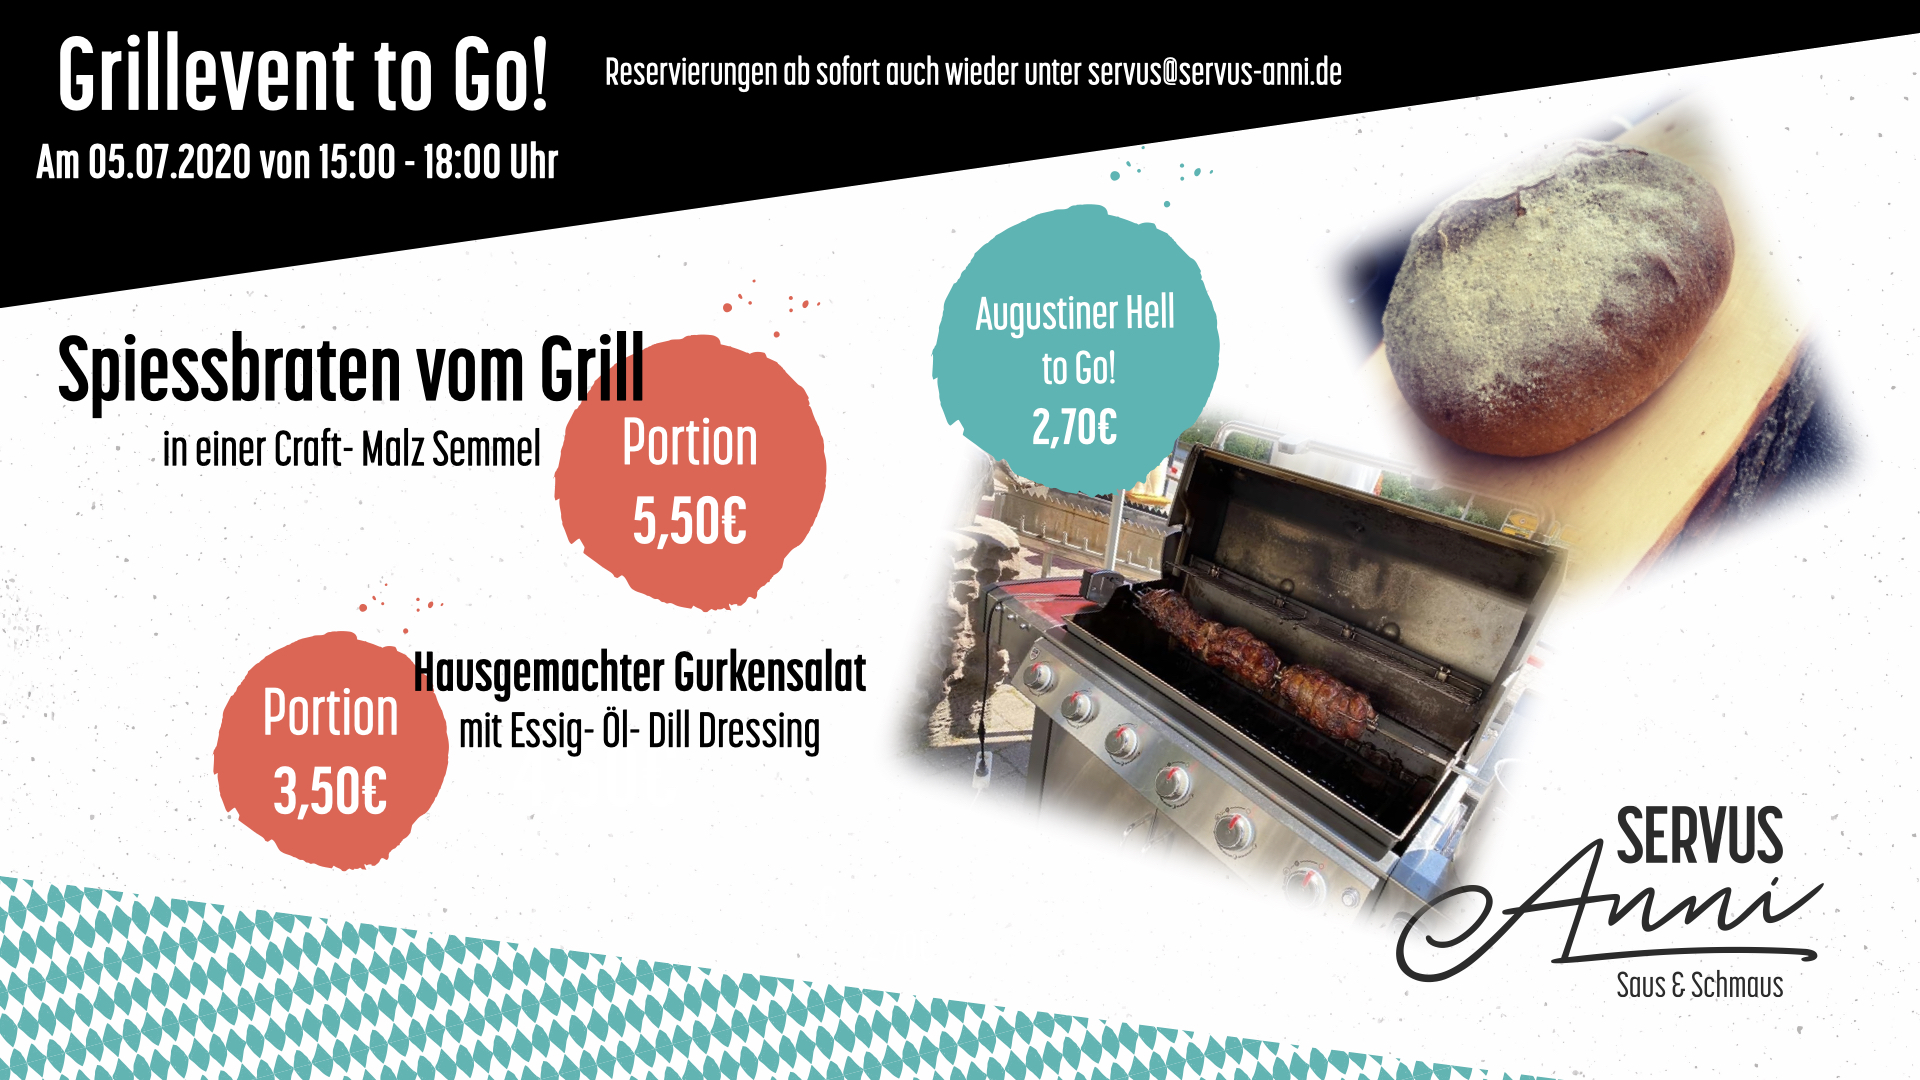 Grillevent to Go!